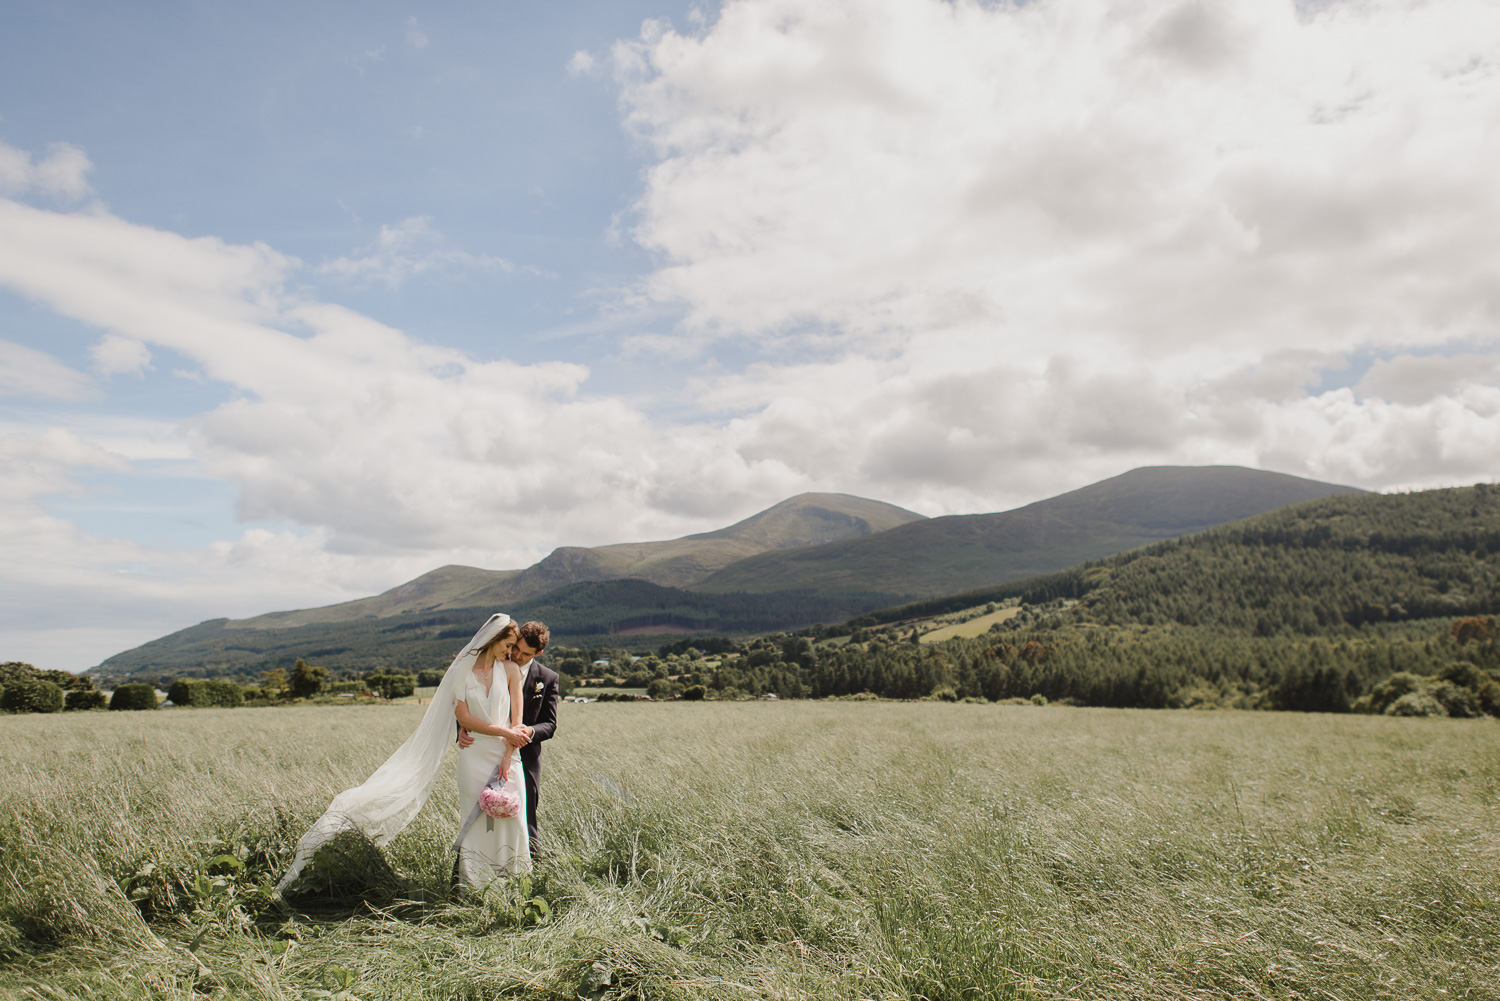 beautiful-wedding-photography-northern-ireland-slieve-donard-wedding-91.jpg